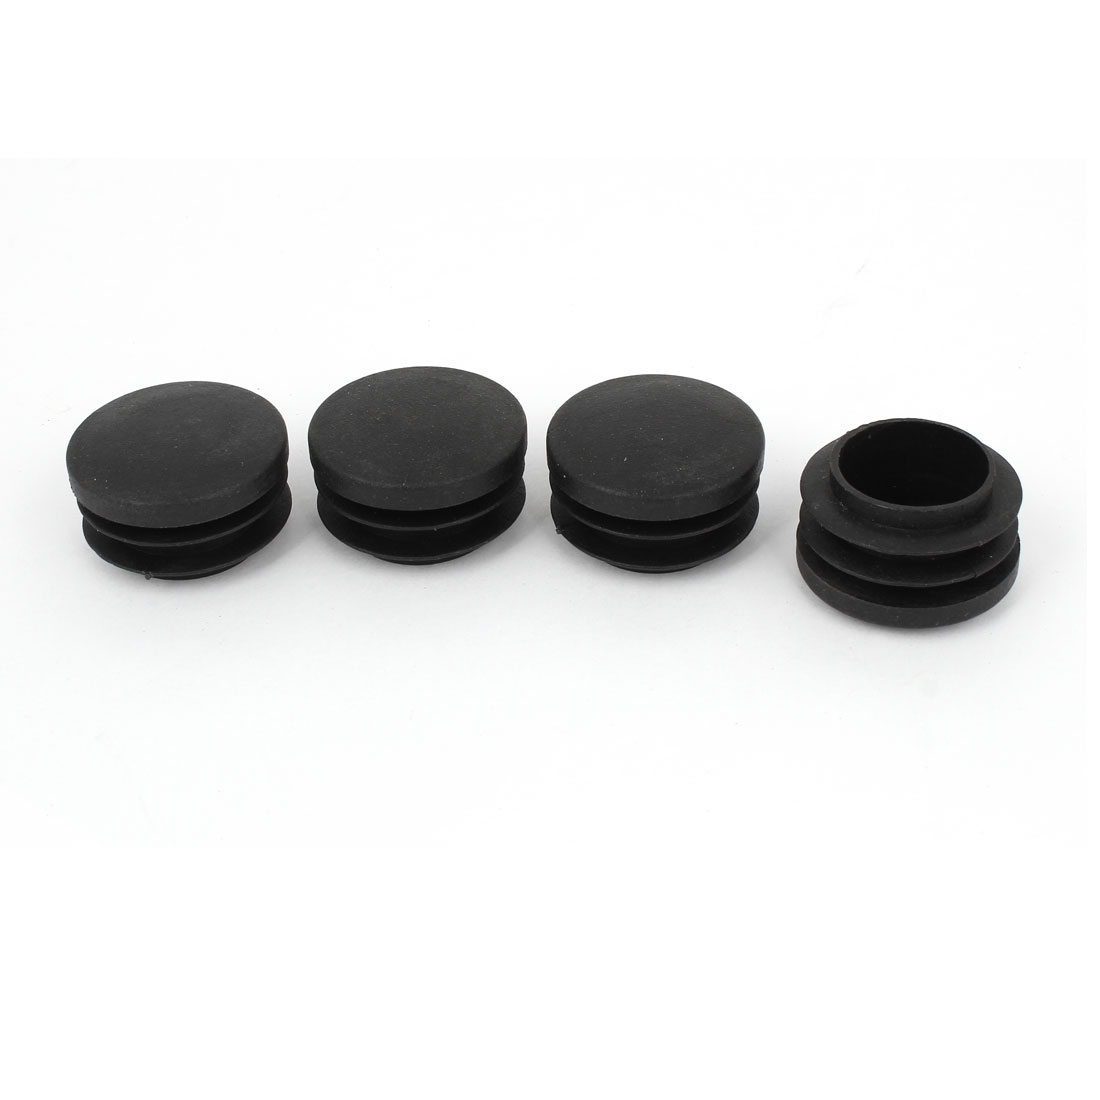 23mm x 35mm Black Plastic Blanking End Caps Round Tube Insert Bung 4 Pcs